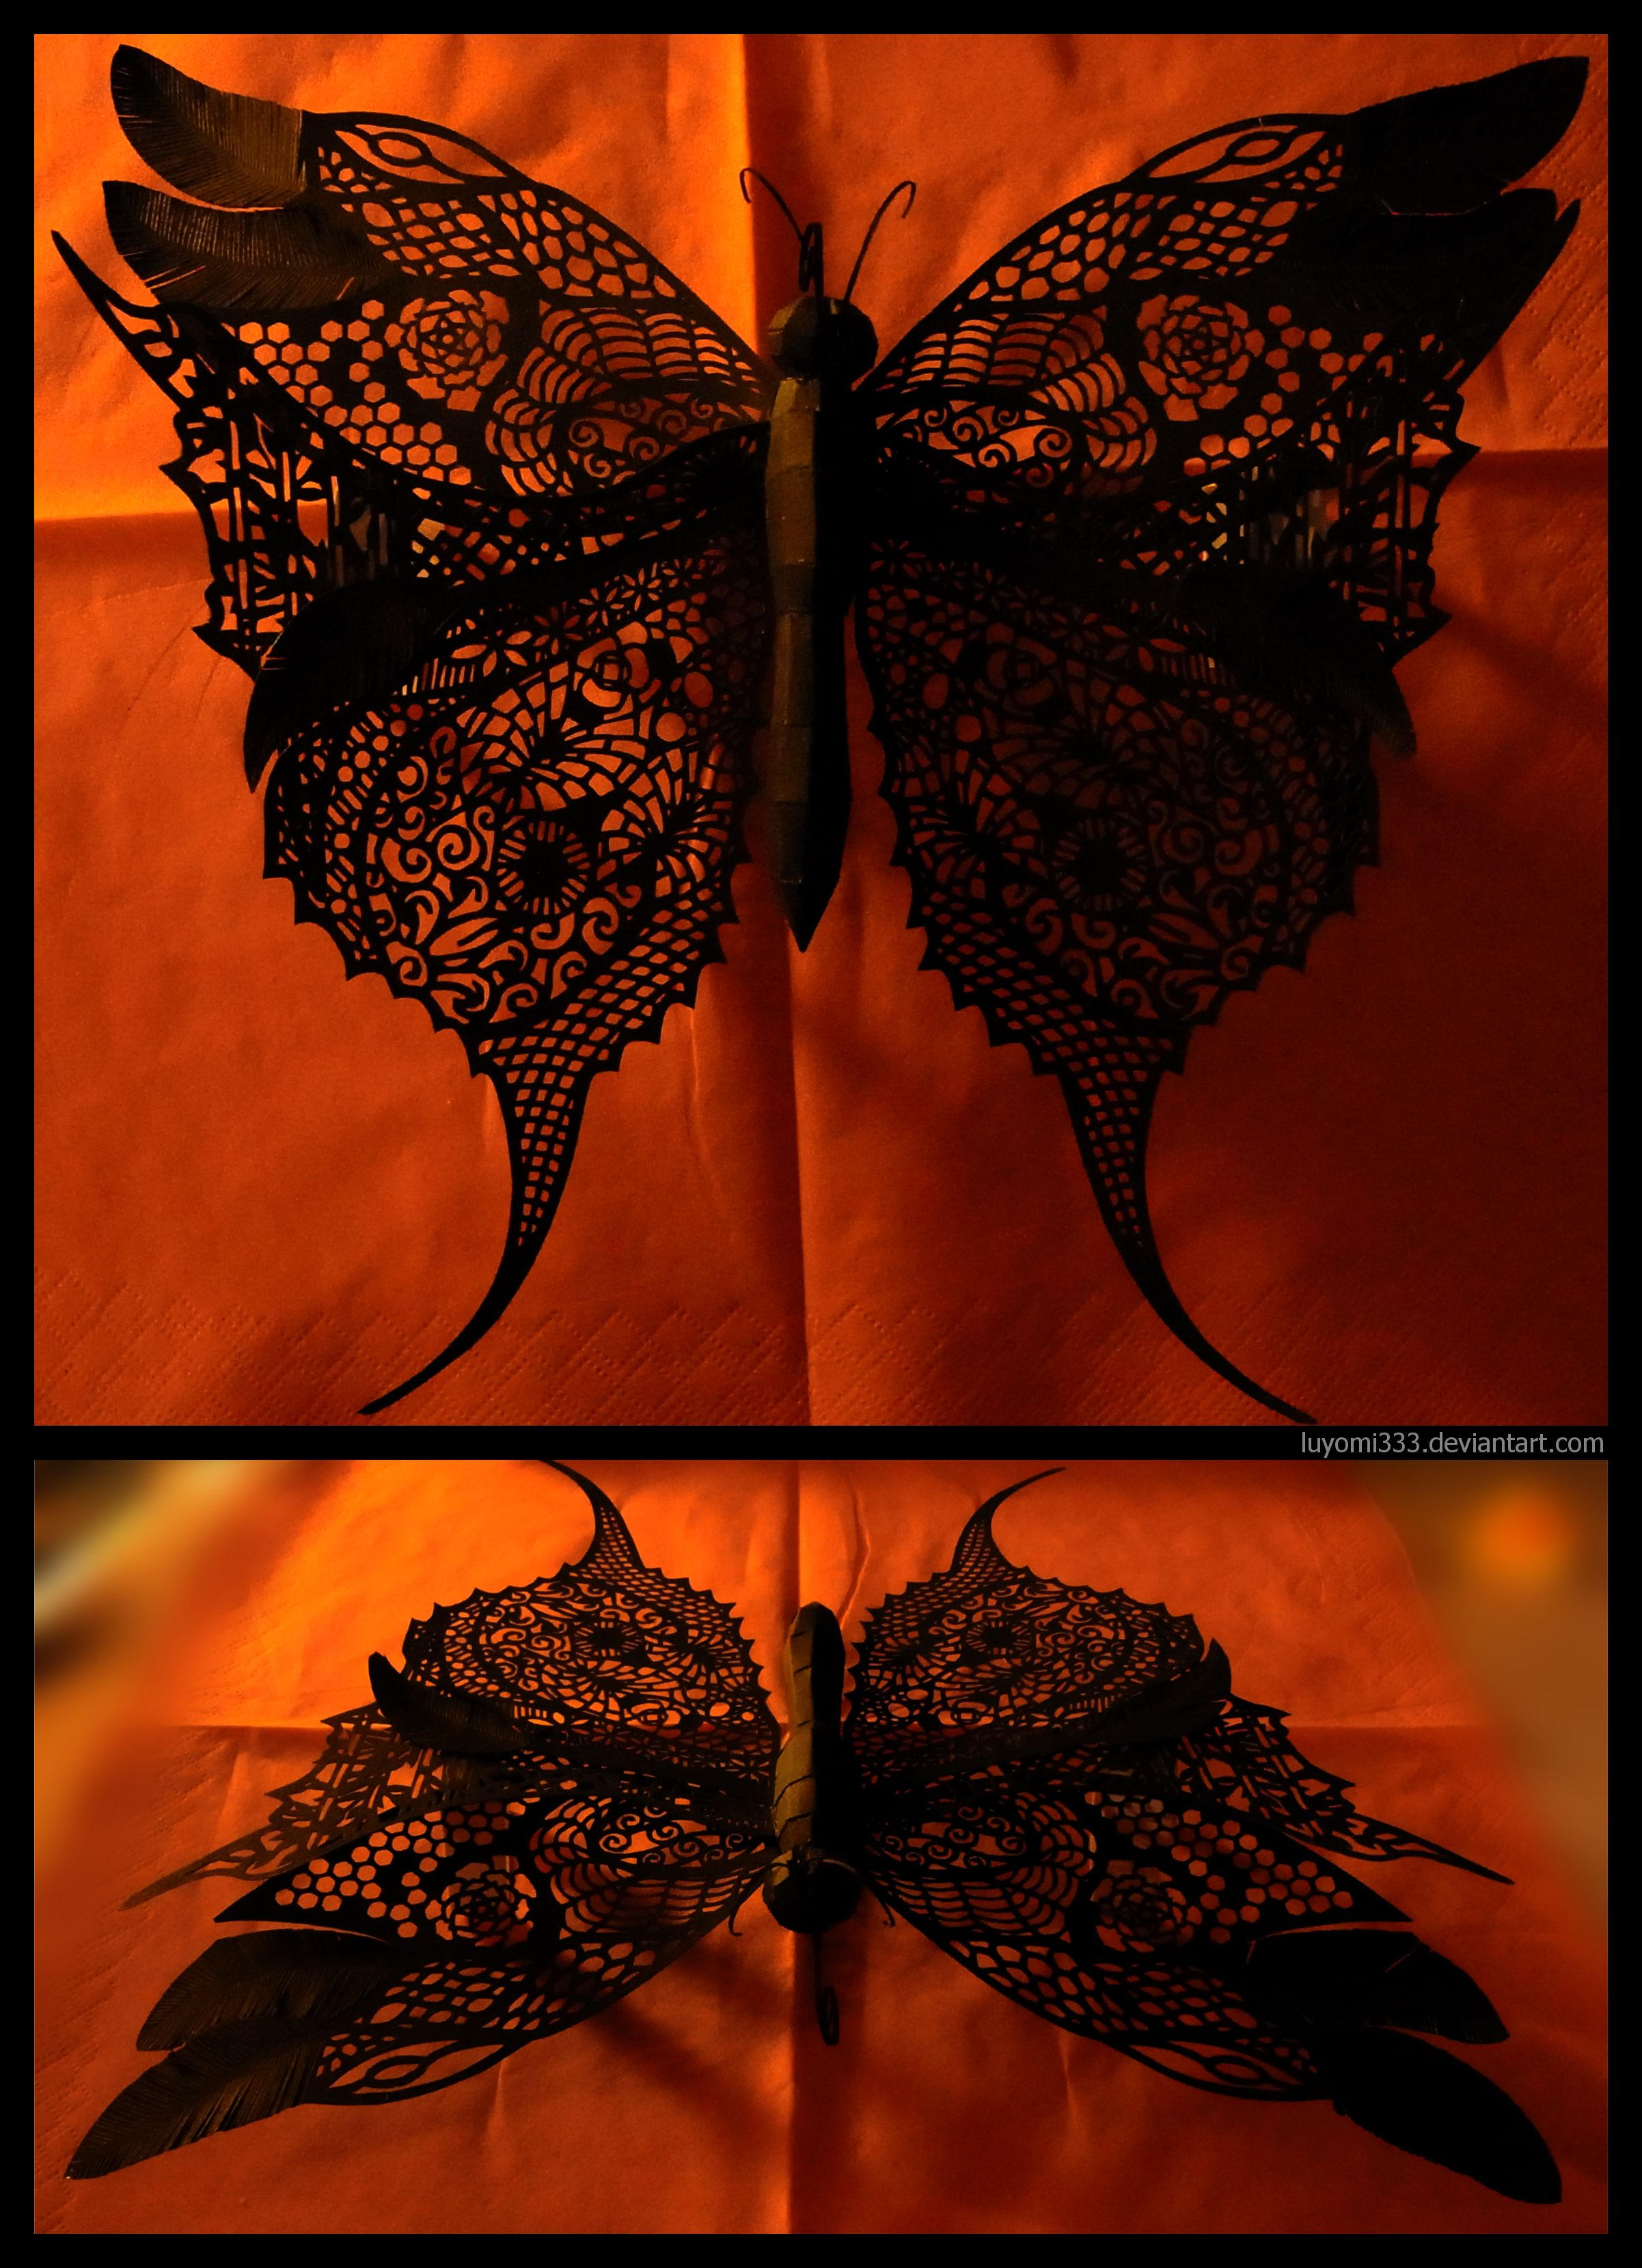 Big Black Butterfly by Luyomi333